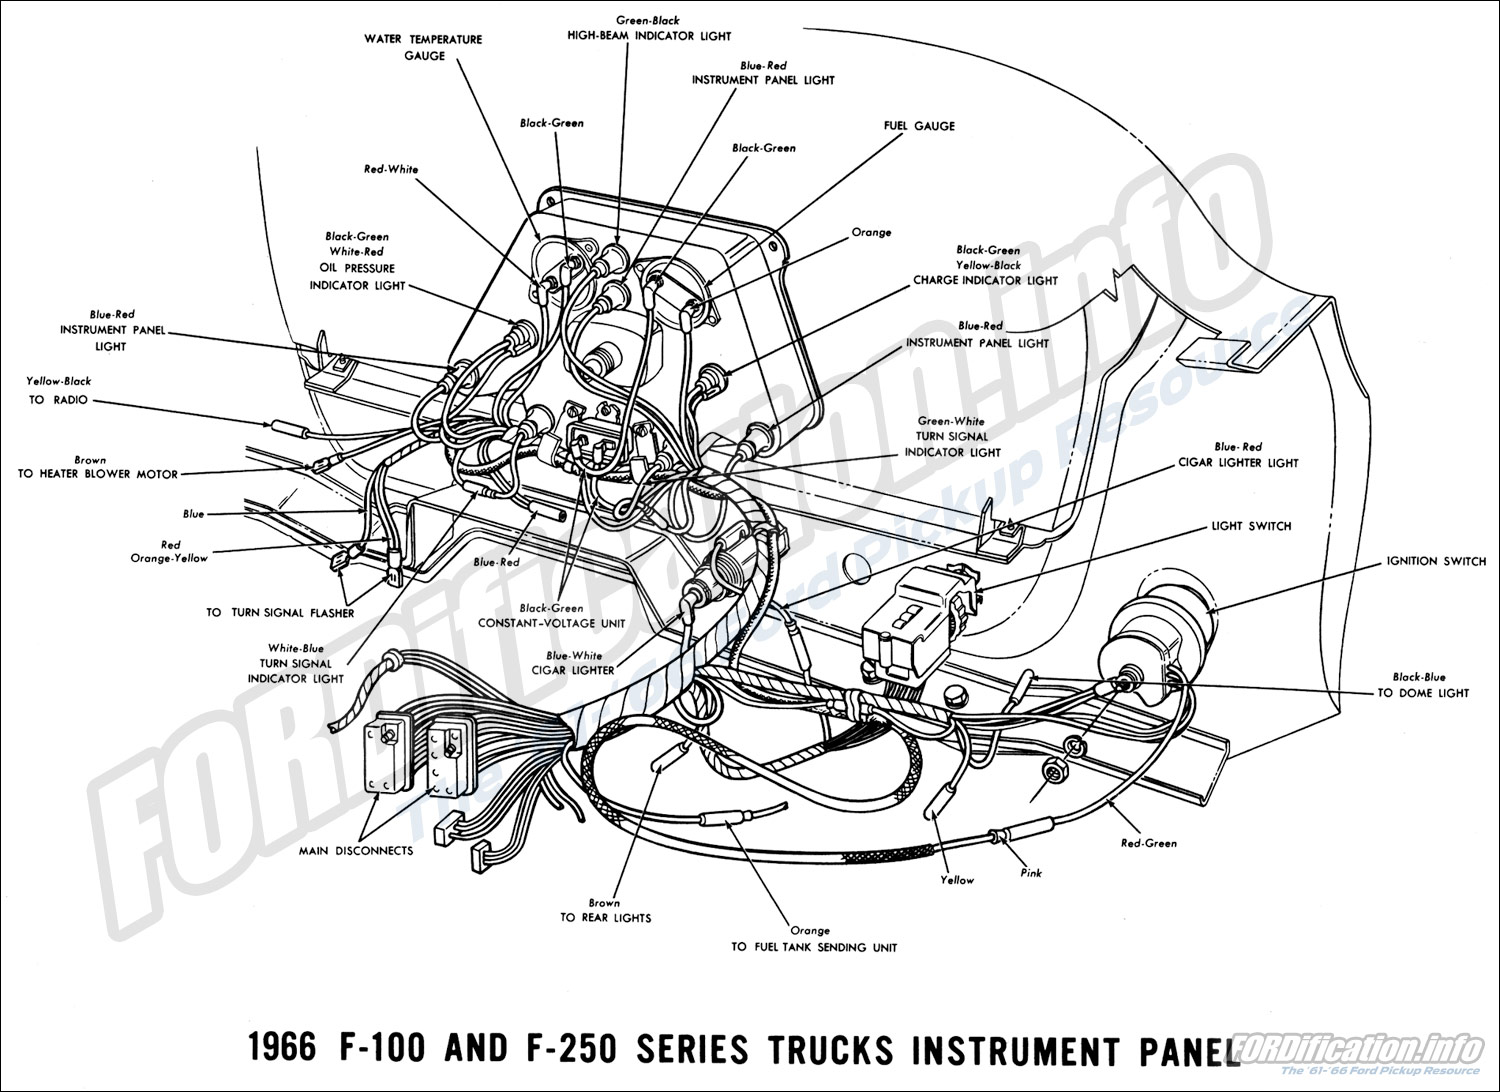 gm truck wiring diagram for turn signals